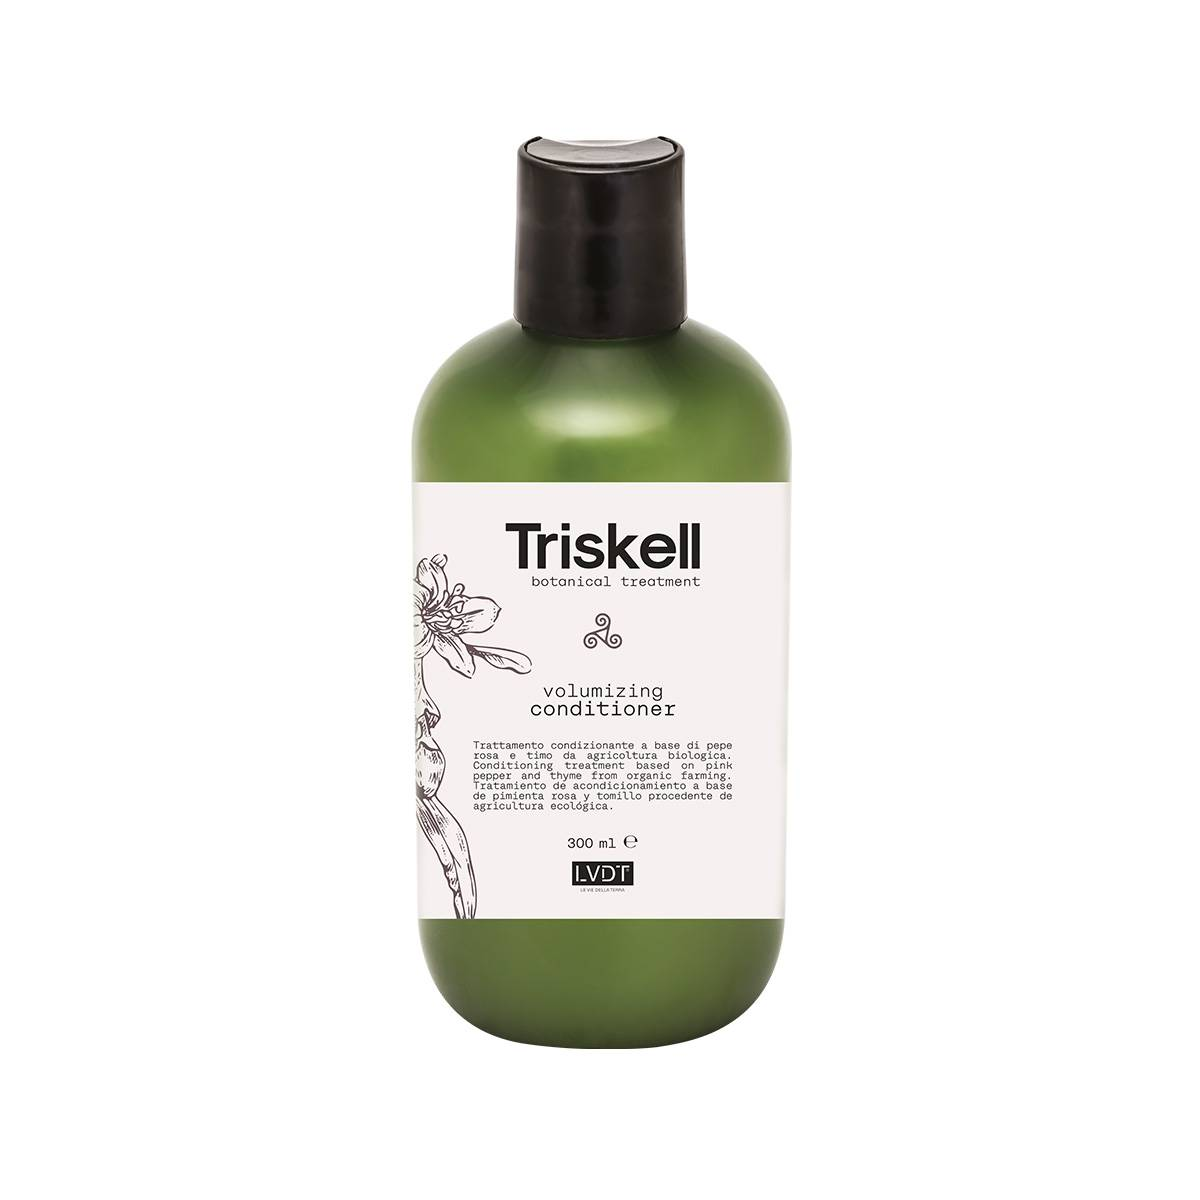 Volumizing Conditioner 300ml Triskell Botanical Treatment